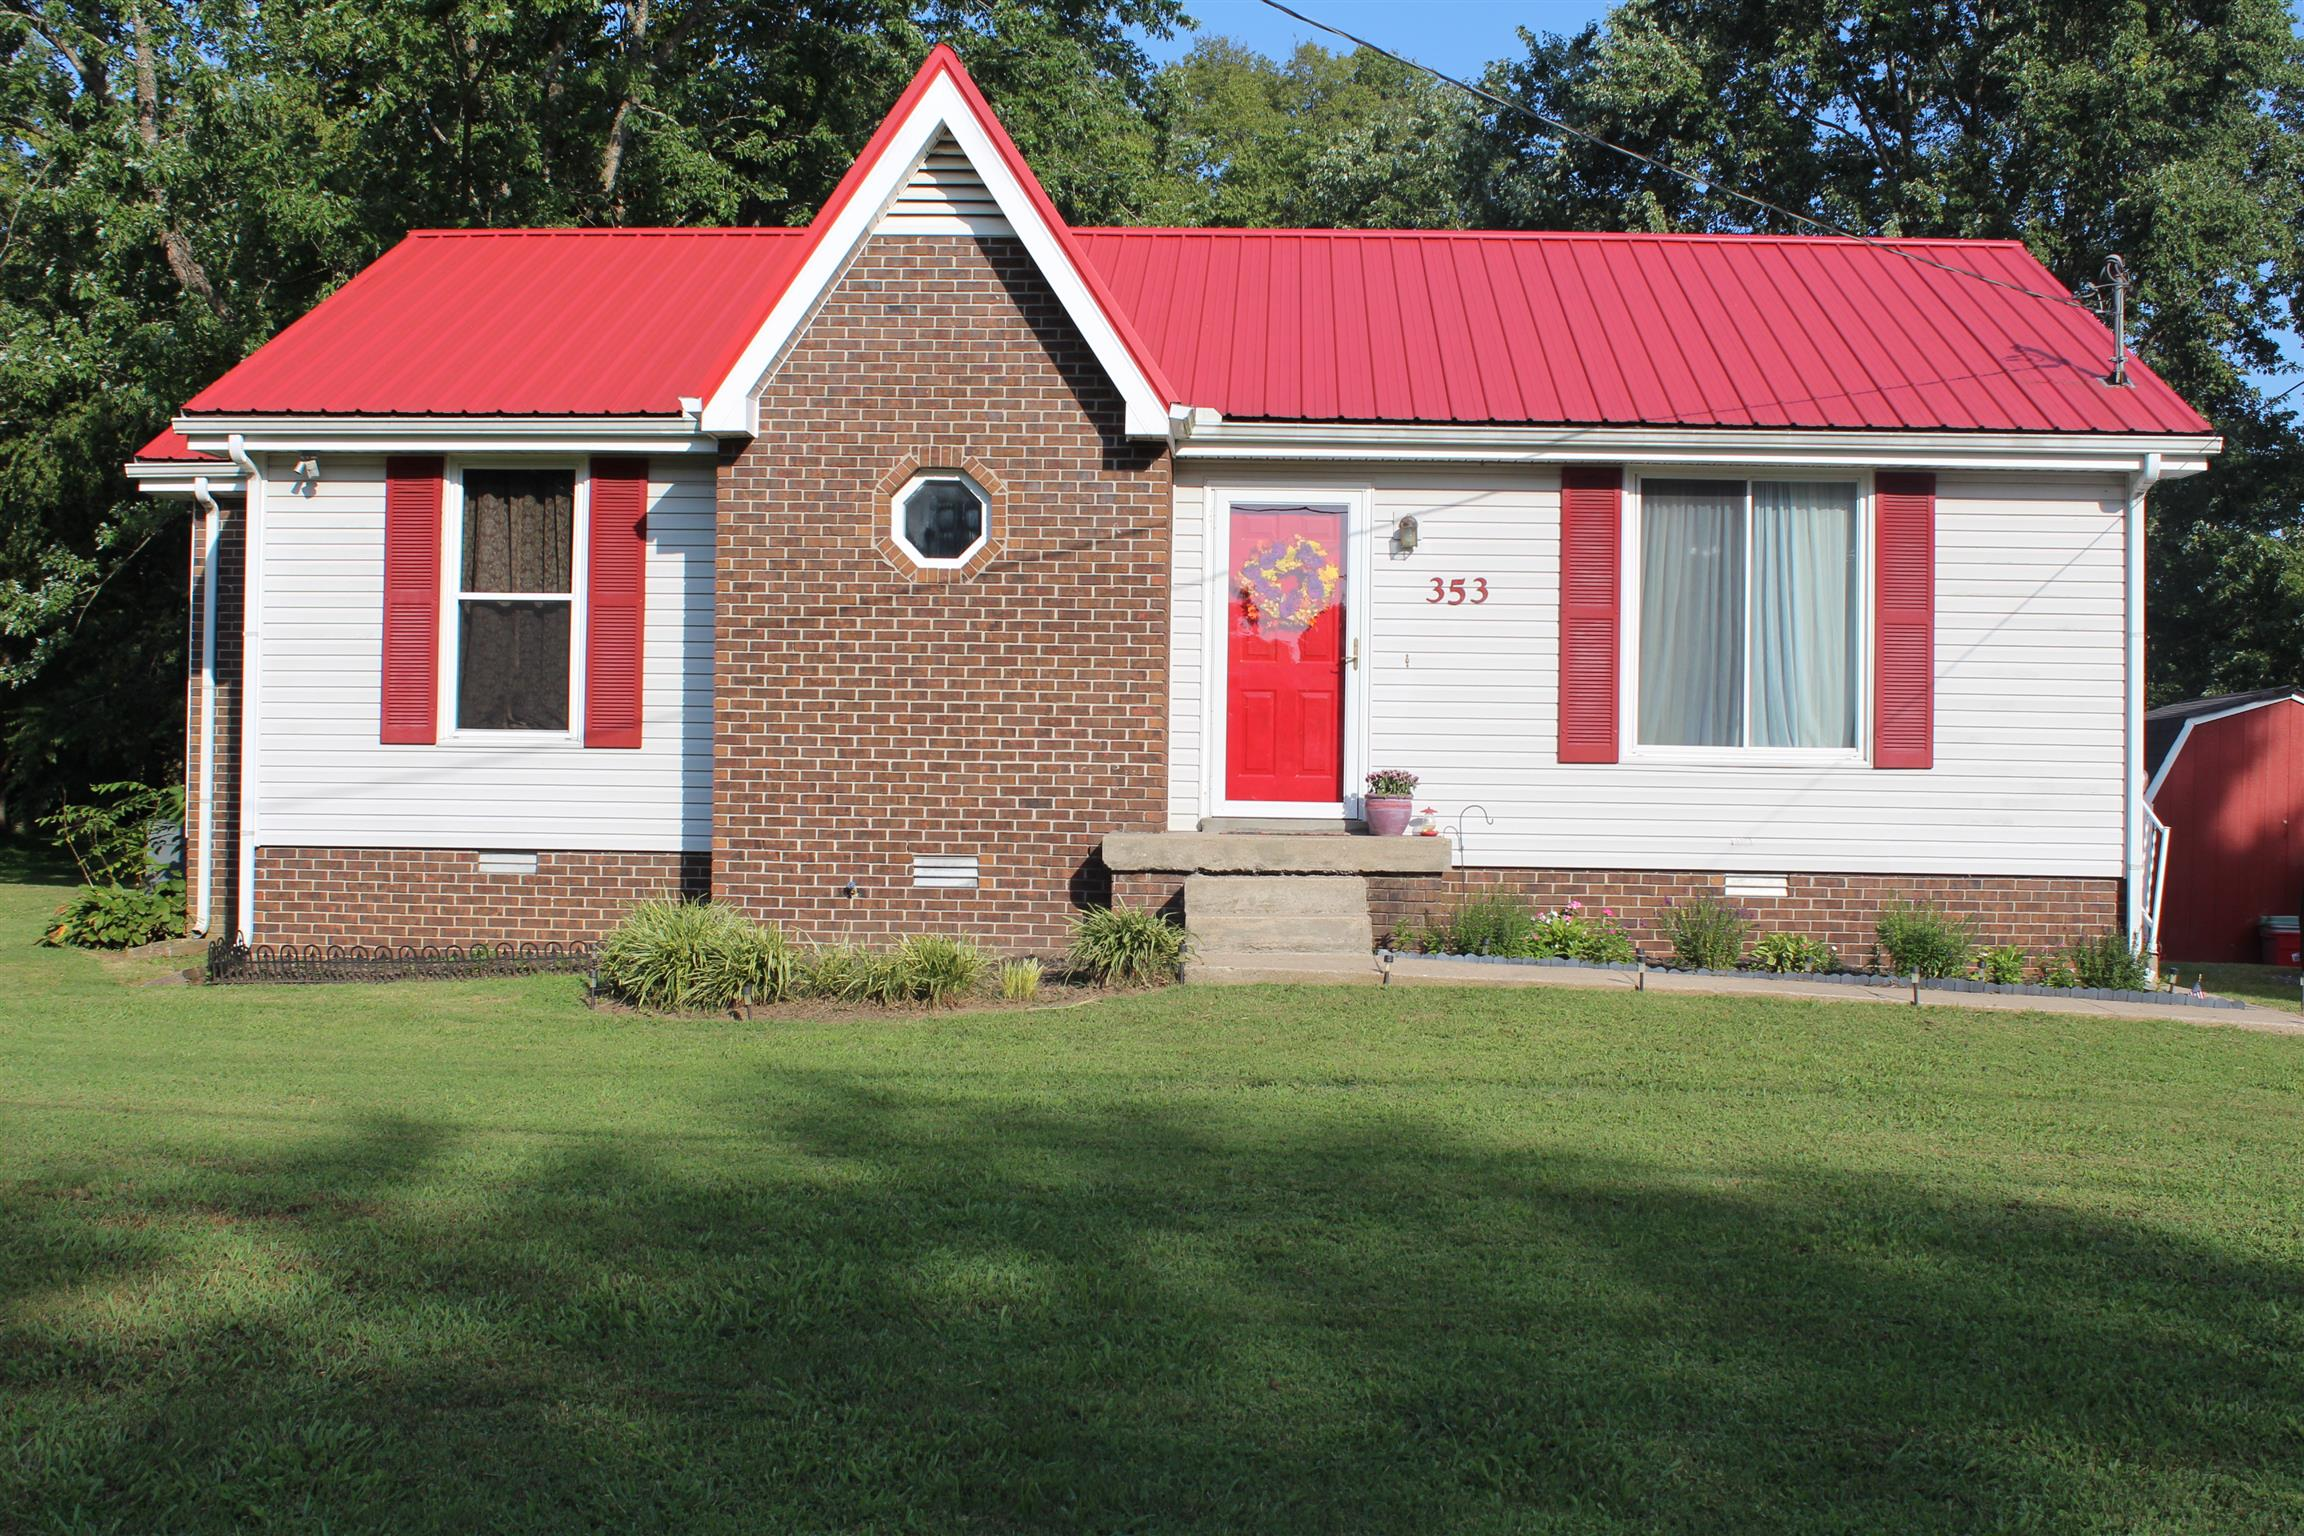 353 Marrell St, Gallatin, Tennessee